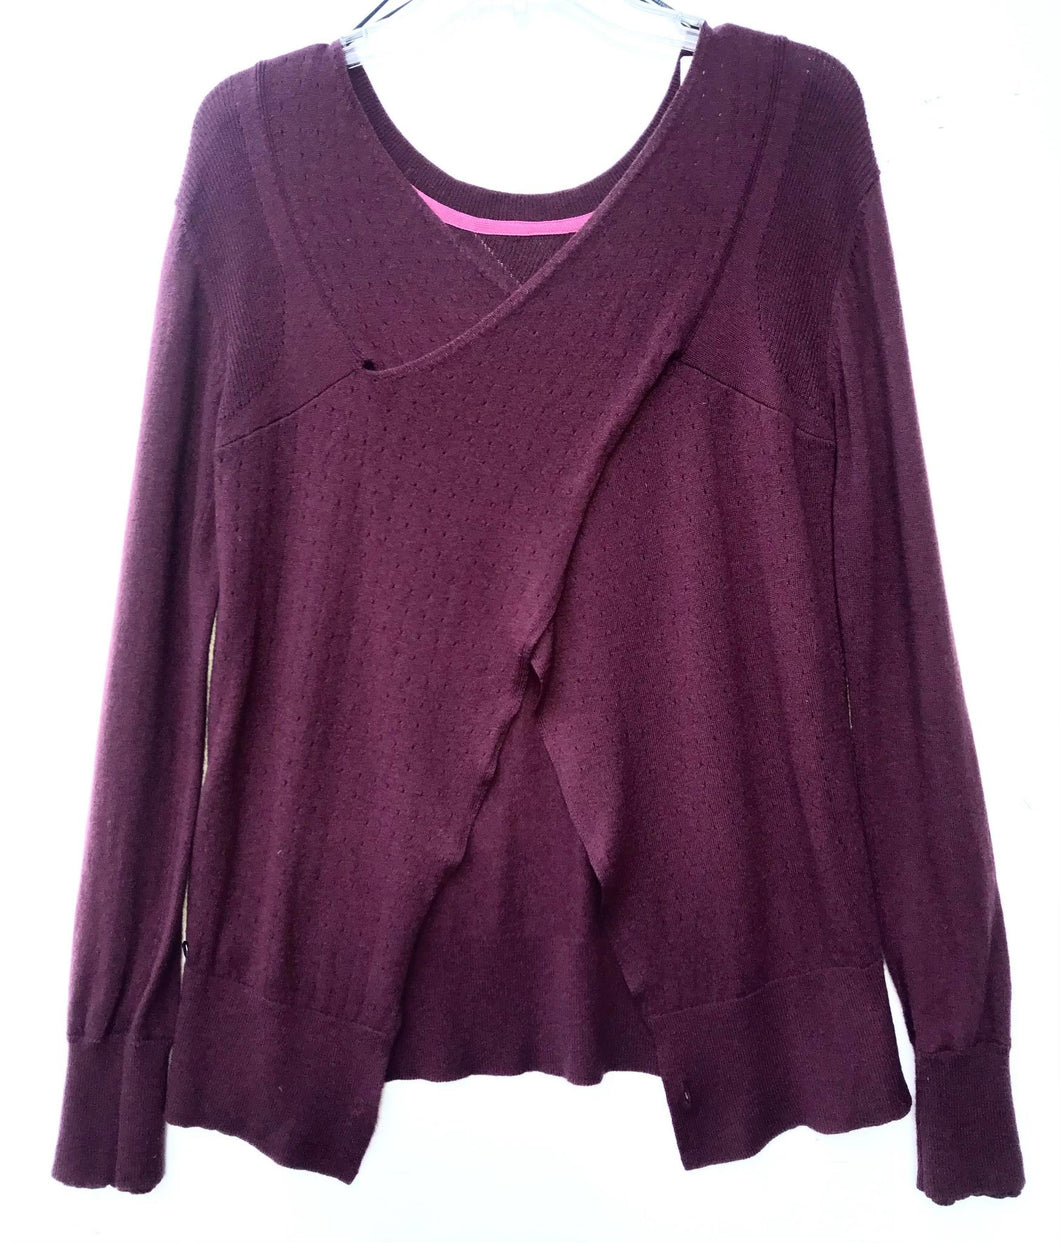 Lululemon Burgundy Wrap Athletic Sweater Size M